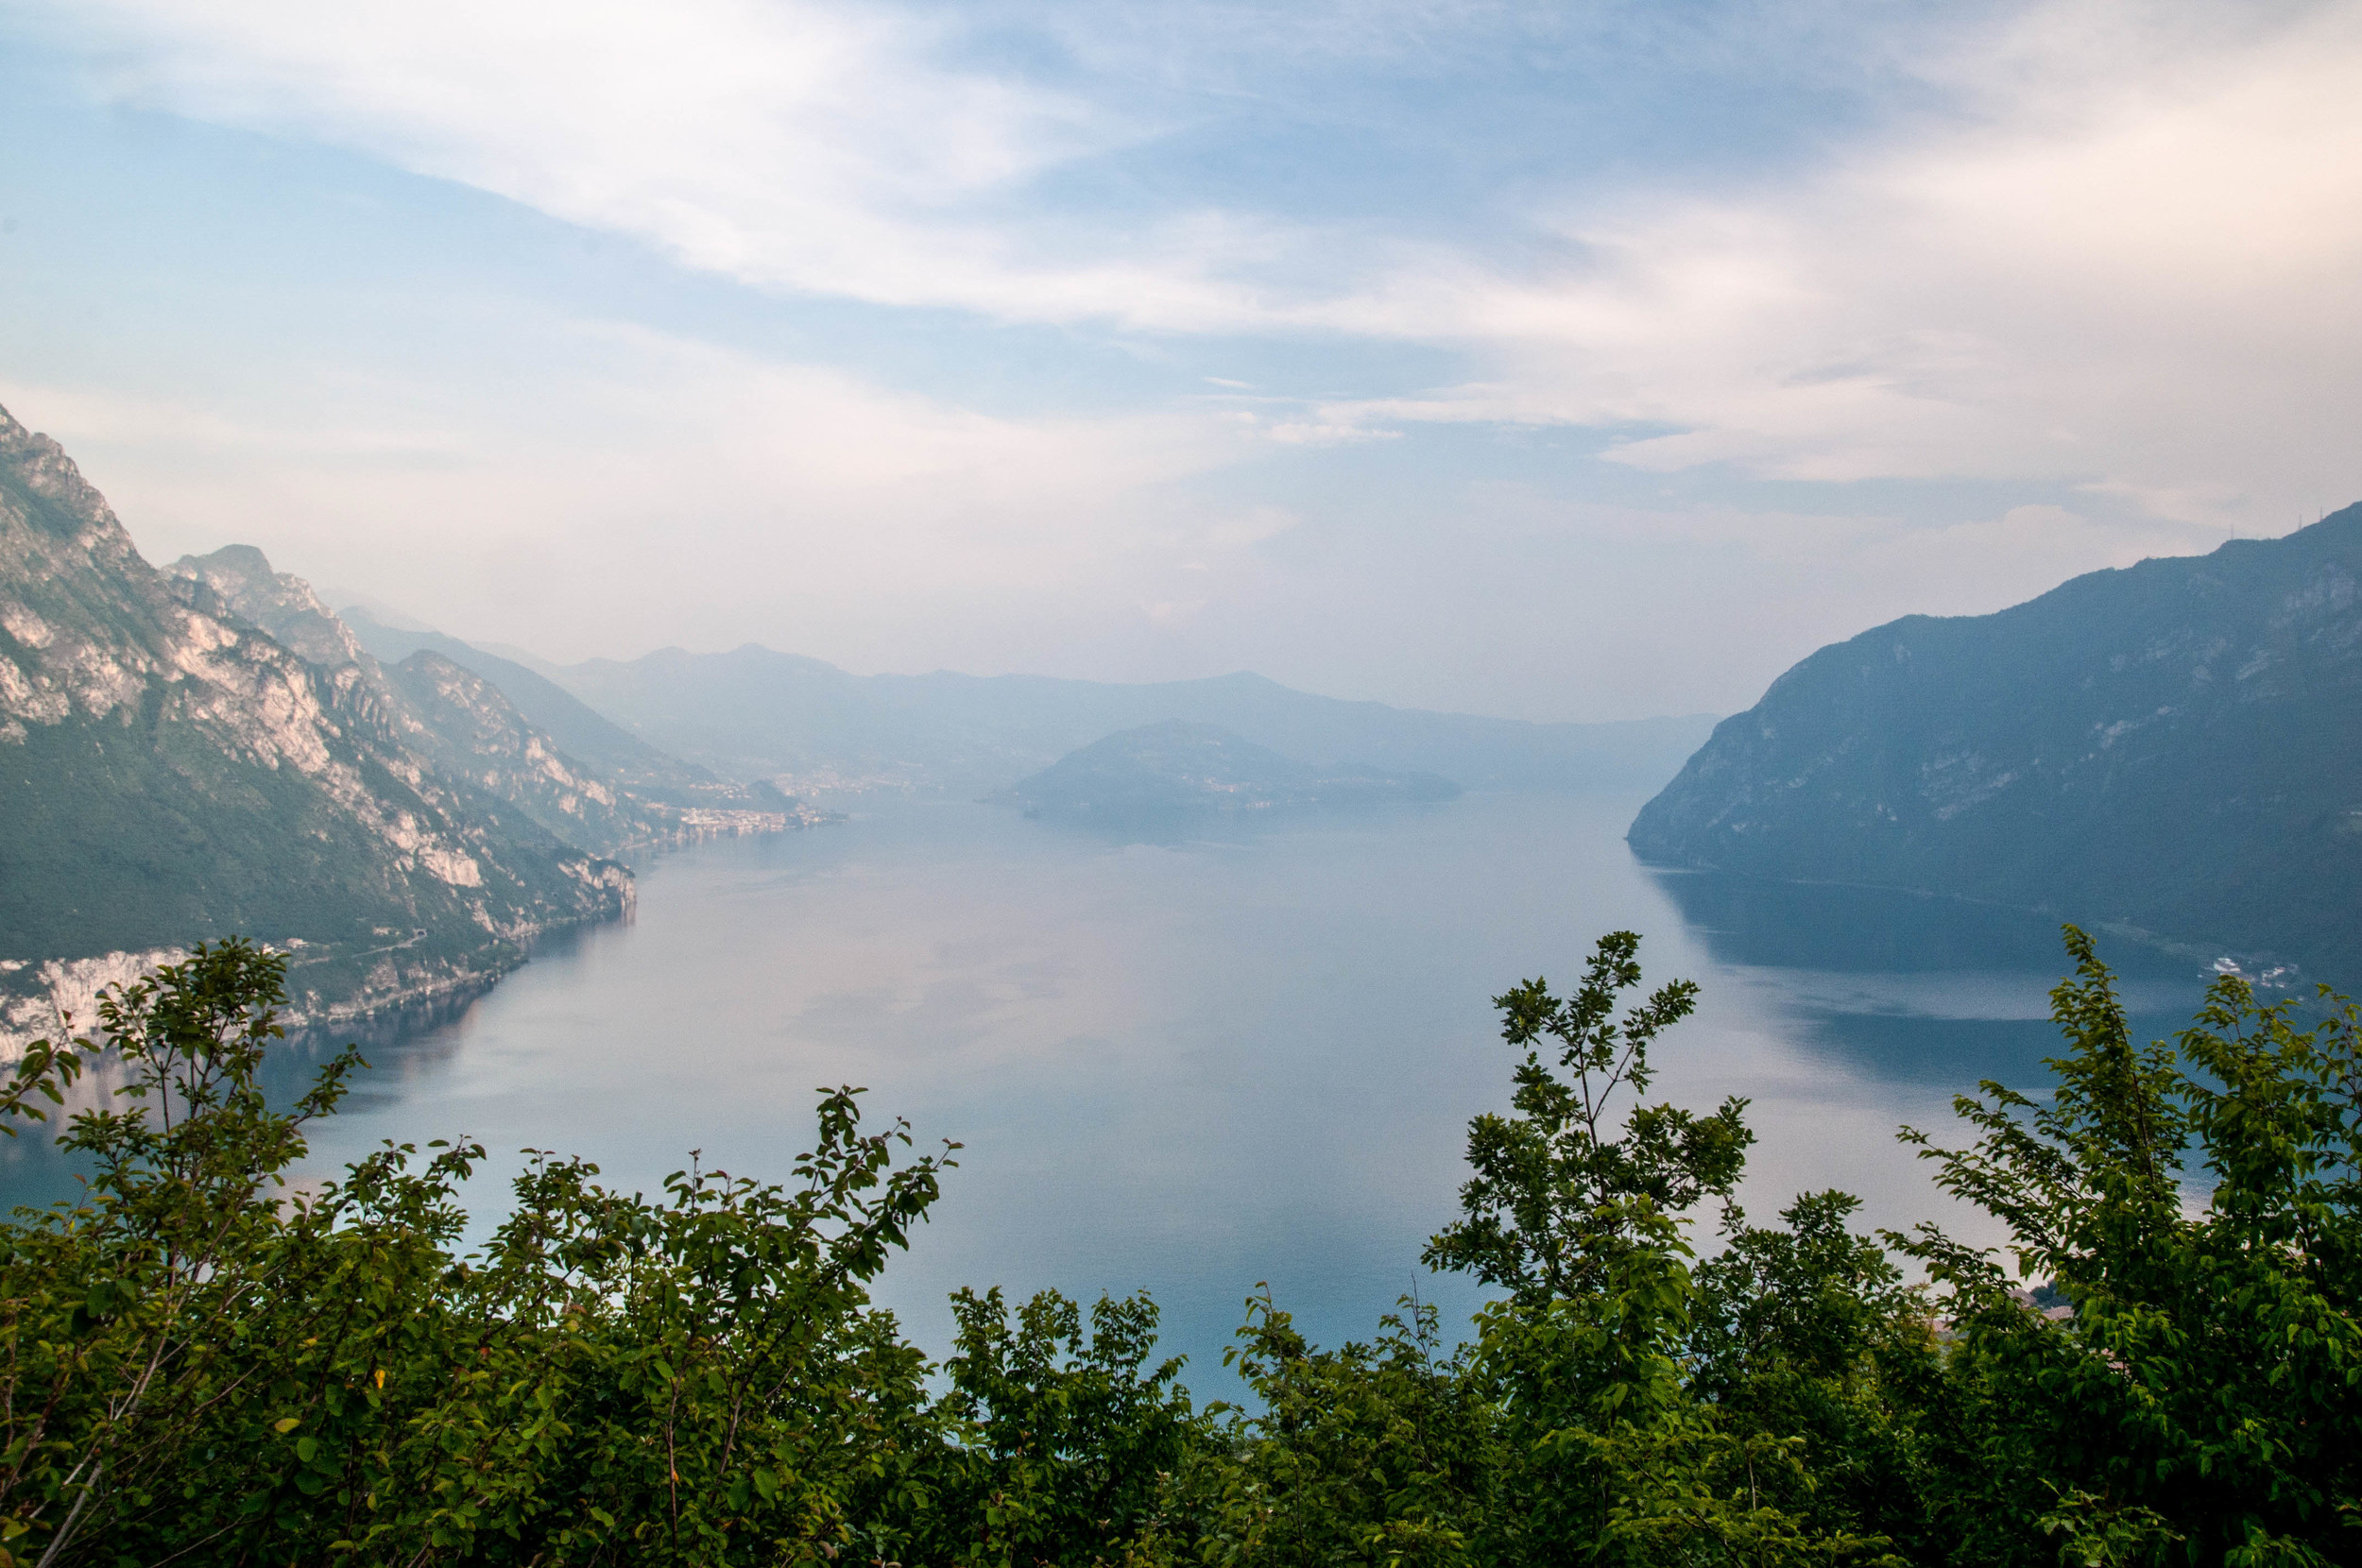 The view of Lake Iseo from our Air Bnb | Photograph by Lauren L Caron © 2016